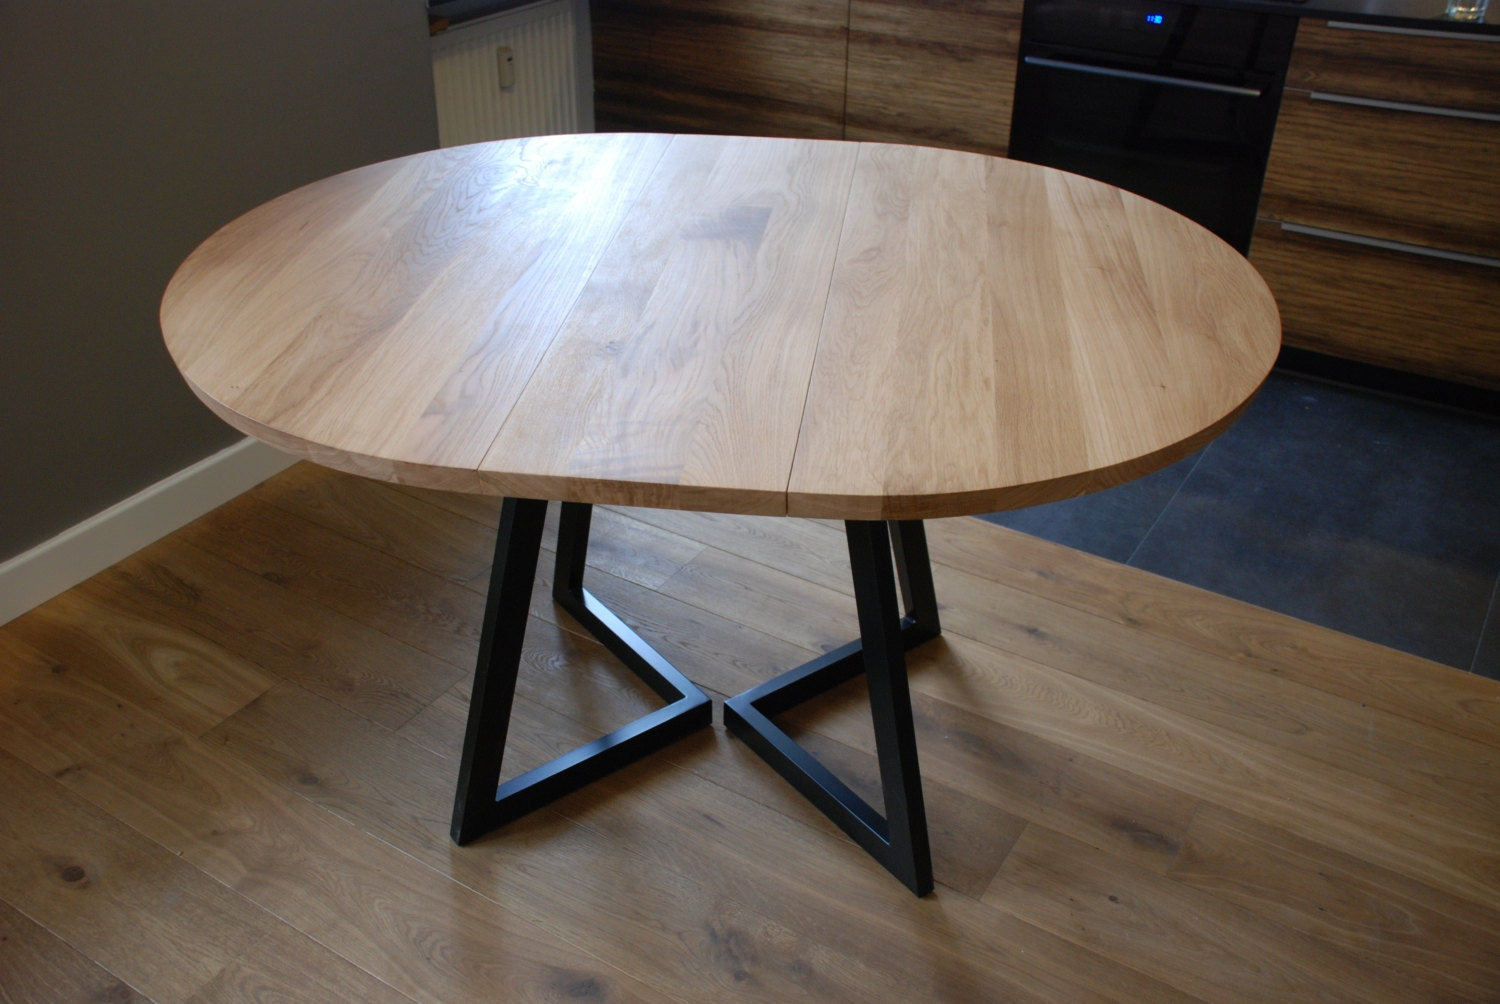 Extendable round table modern design steel and timber for Table ronde a rallonge